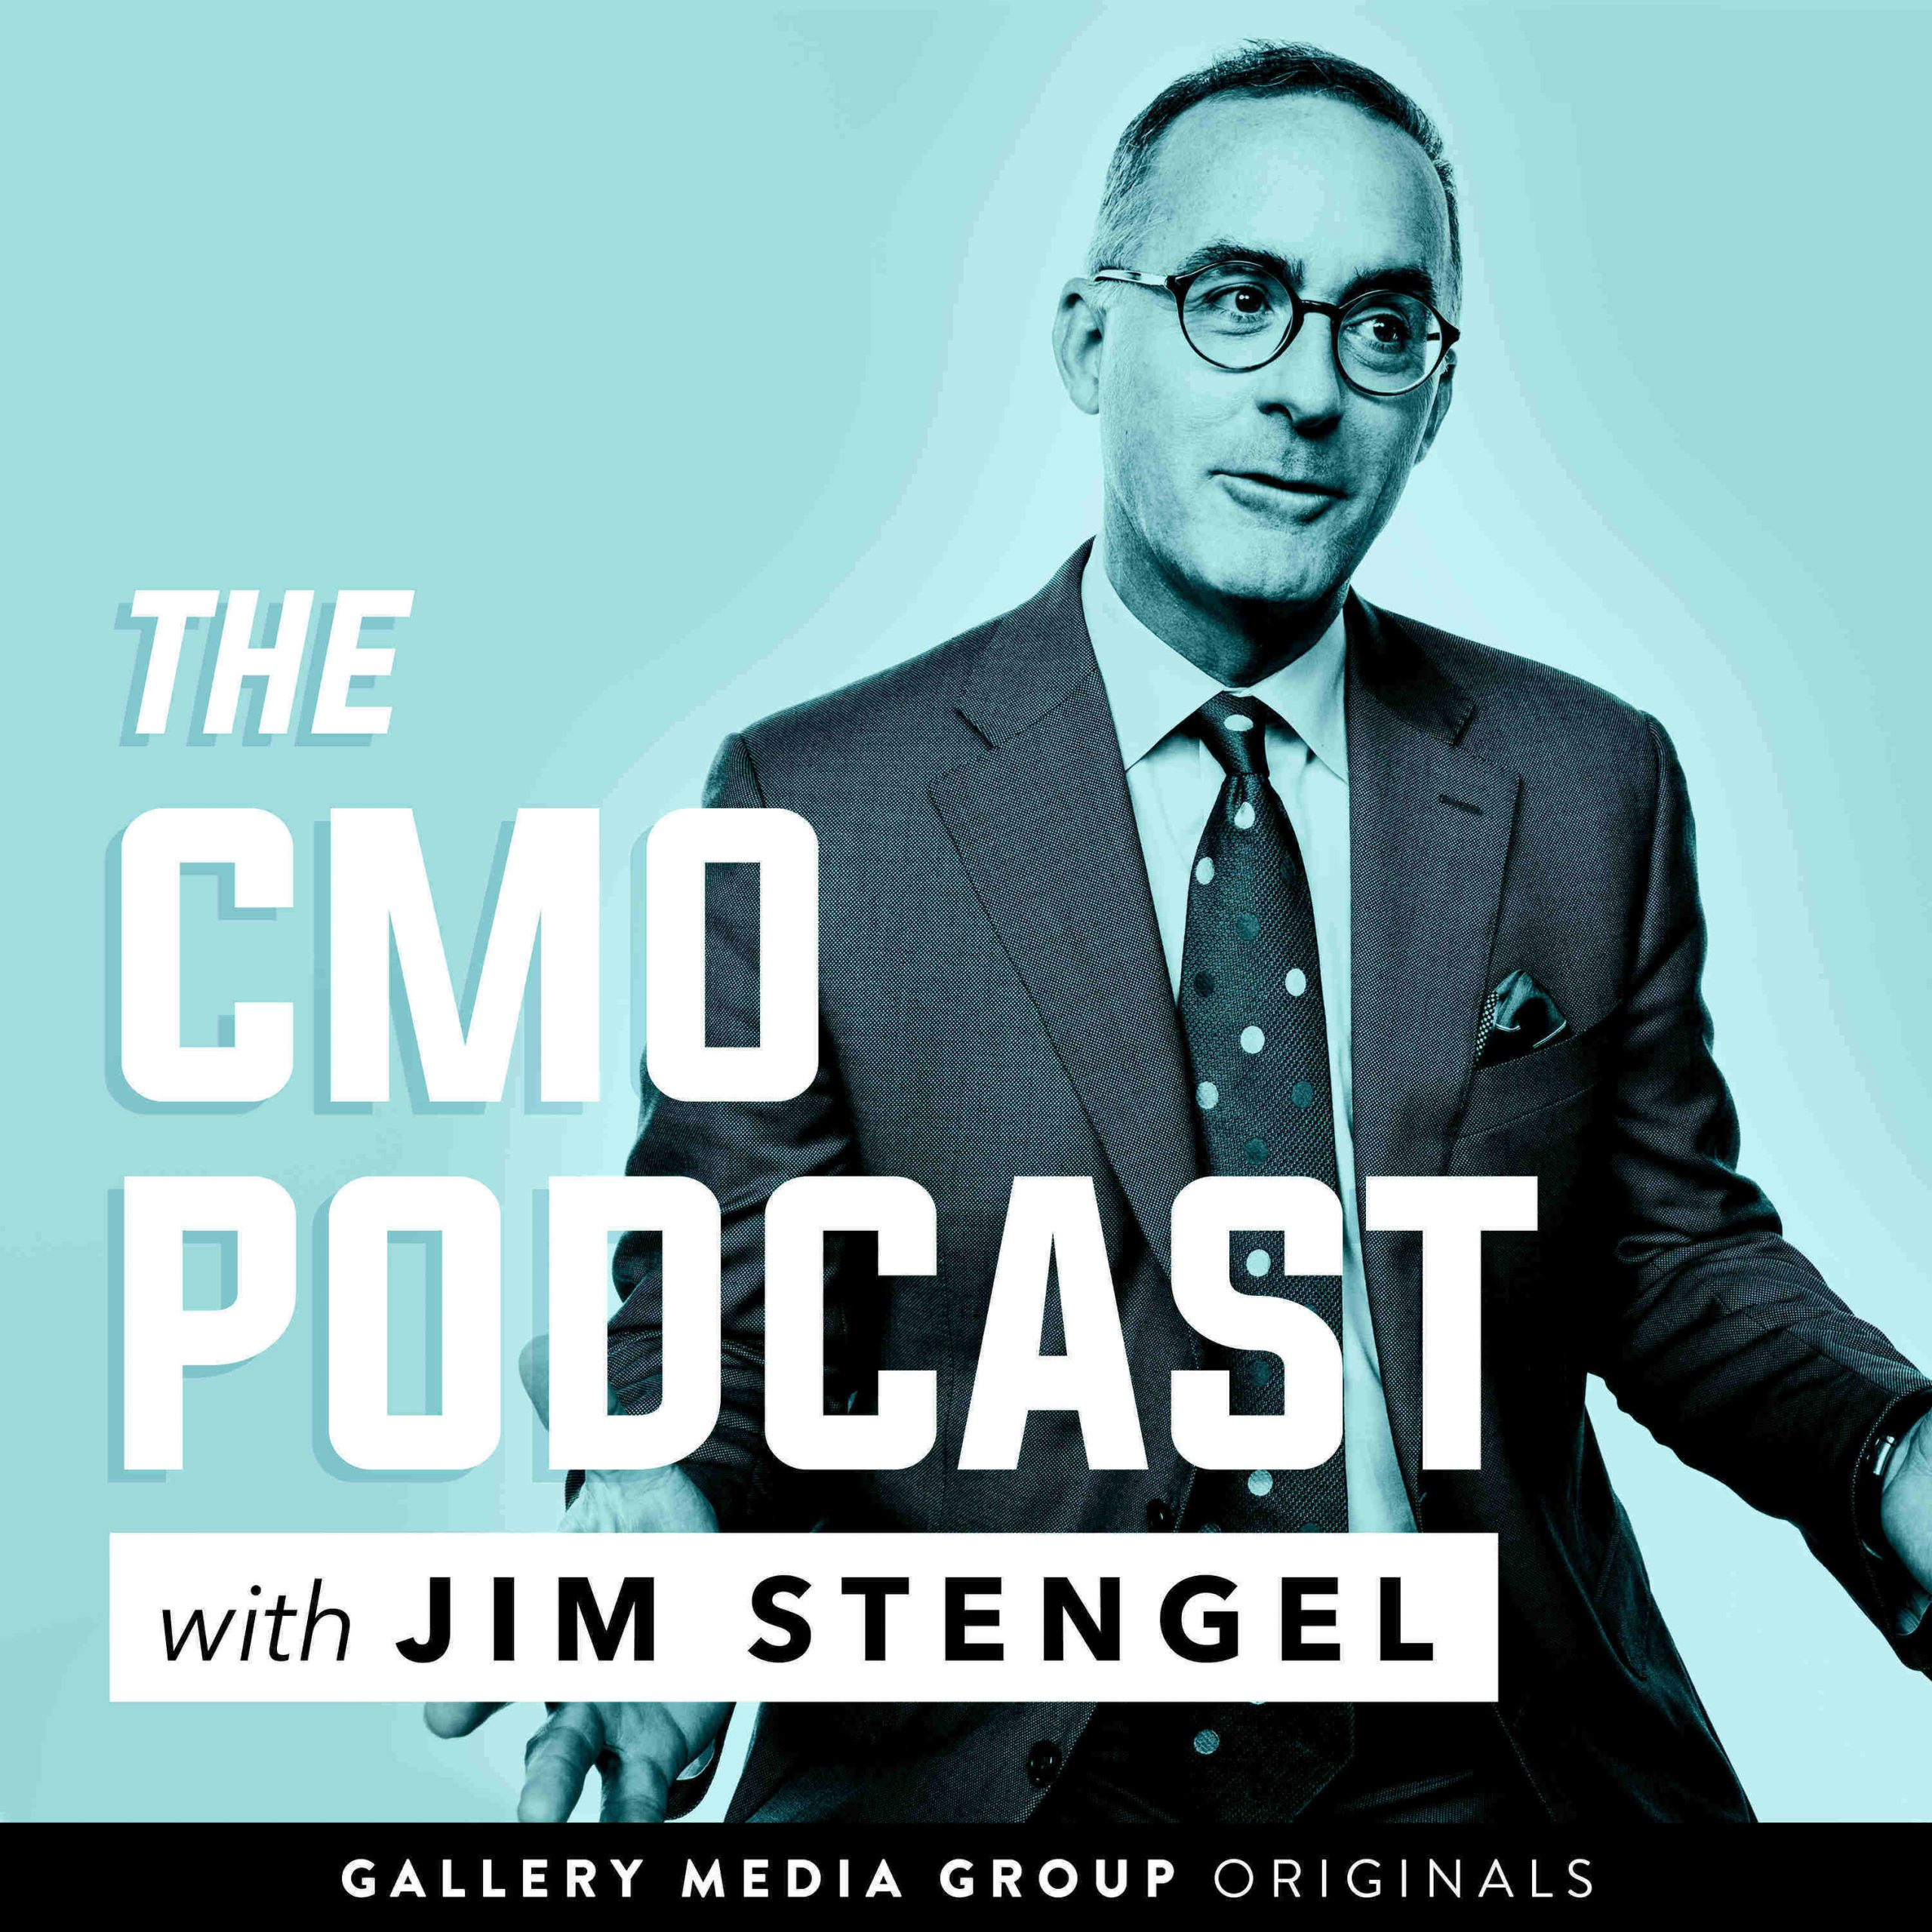 Jim Stengel Podcast